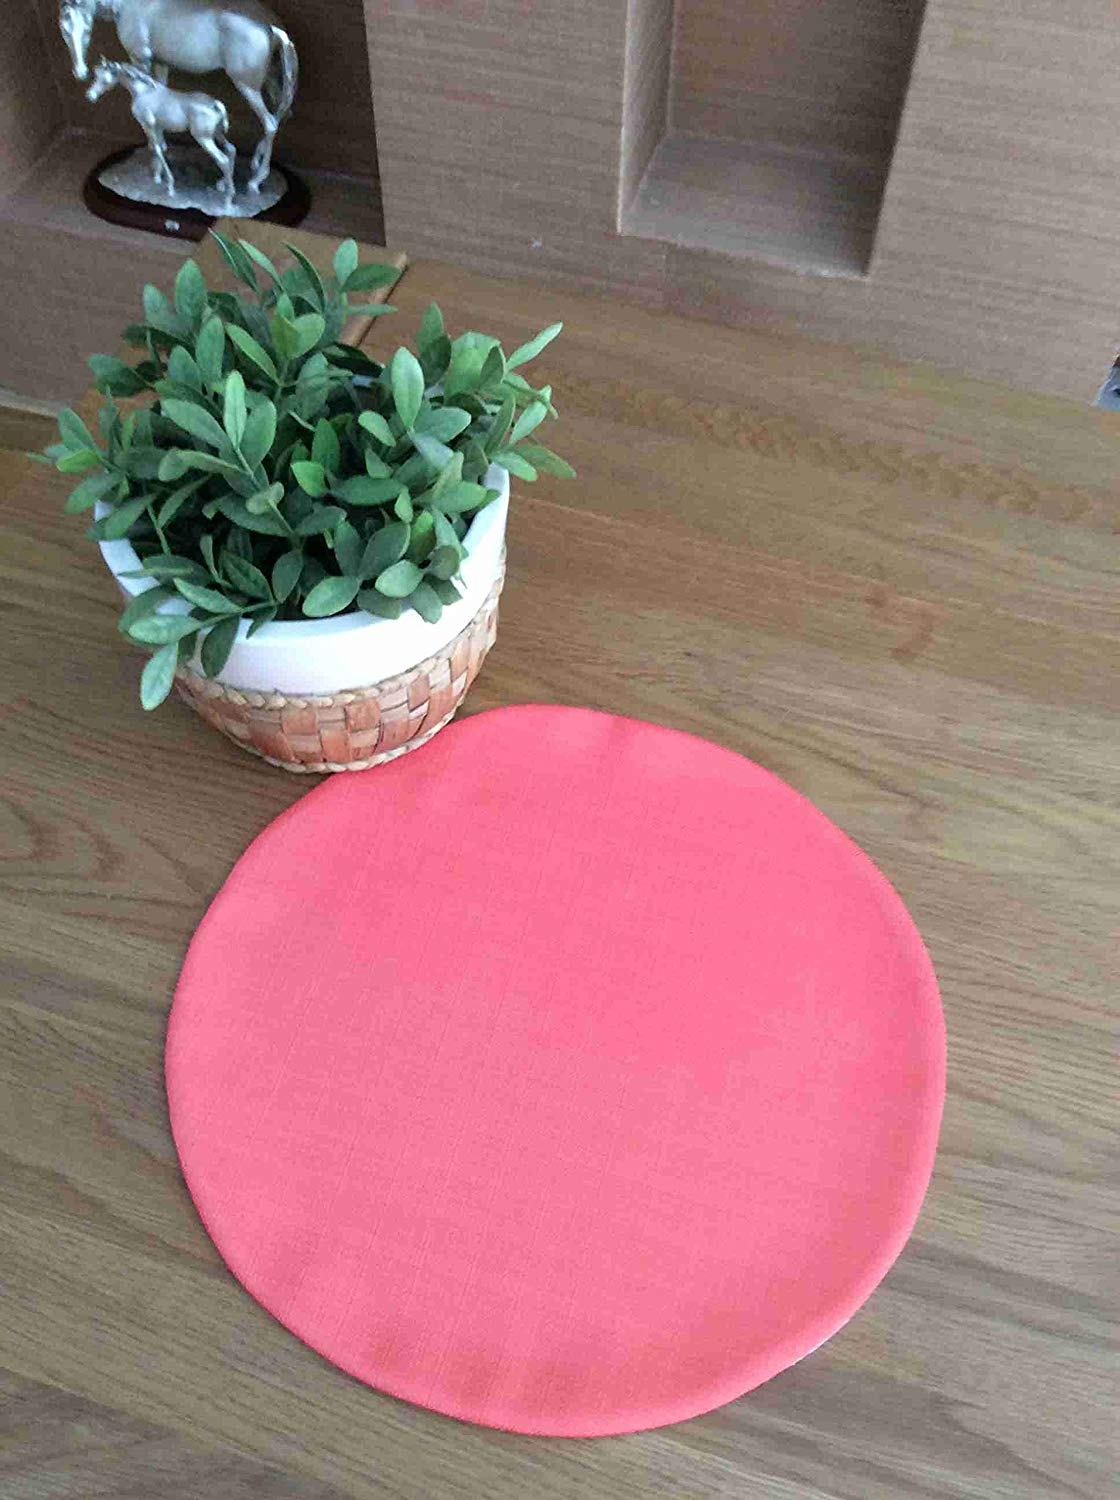 "TekgulDesign Red Placemats,%100 Polyester, Handmade, Diameter: 35cm (14""), Crease Resistant and Stain-Proof Fabric, Modern and Colorful Ultra HD Graphics."